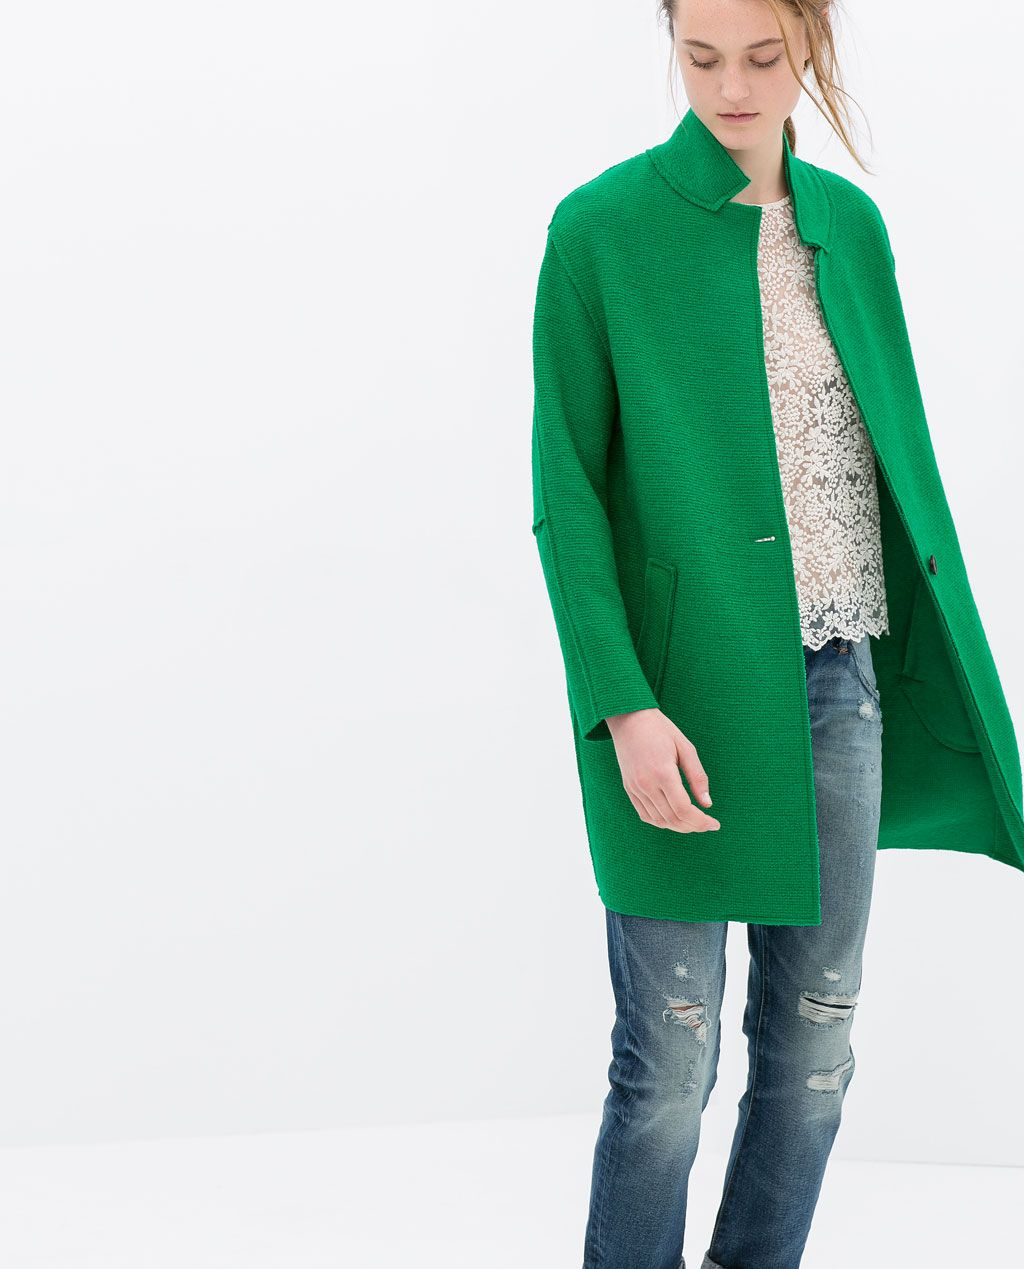 Wool Coat From Zara In The Most Perfect Shade Of Kelly Green Wollen Jas Jas Kleding